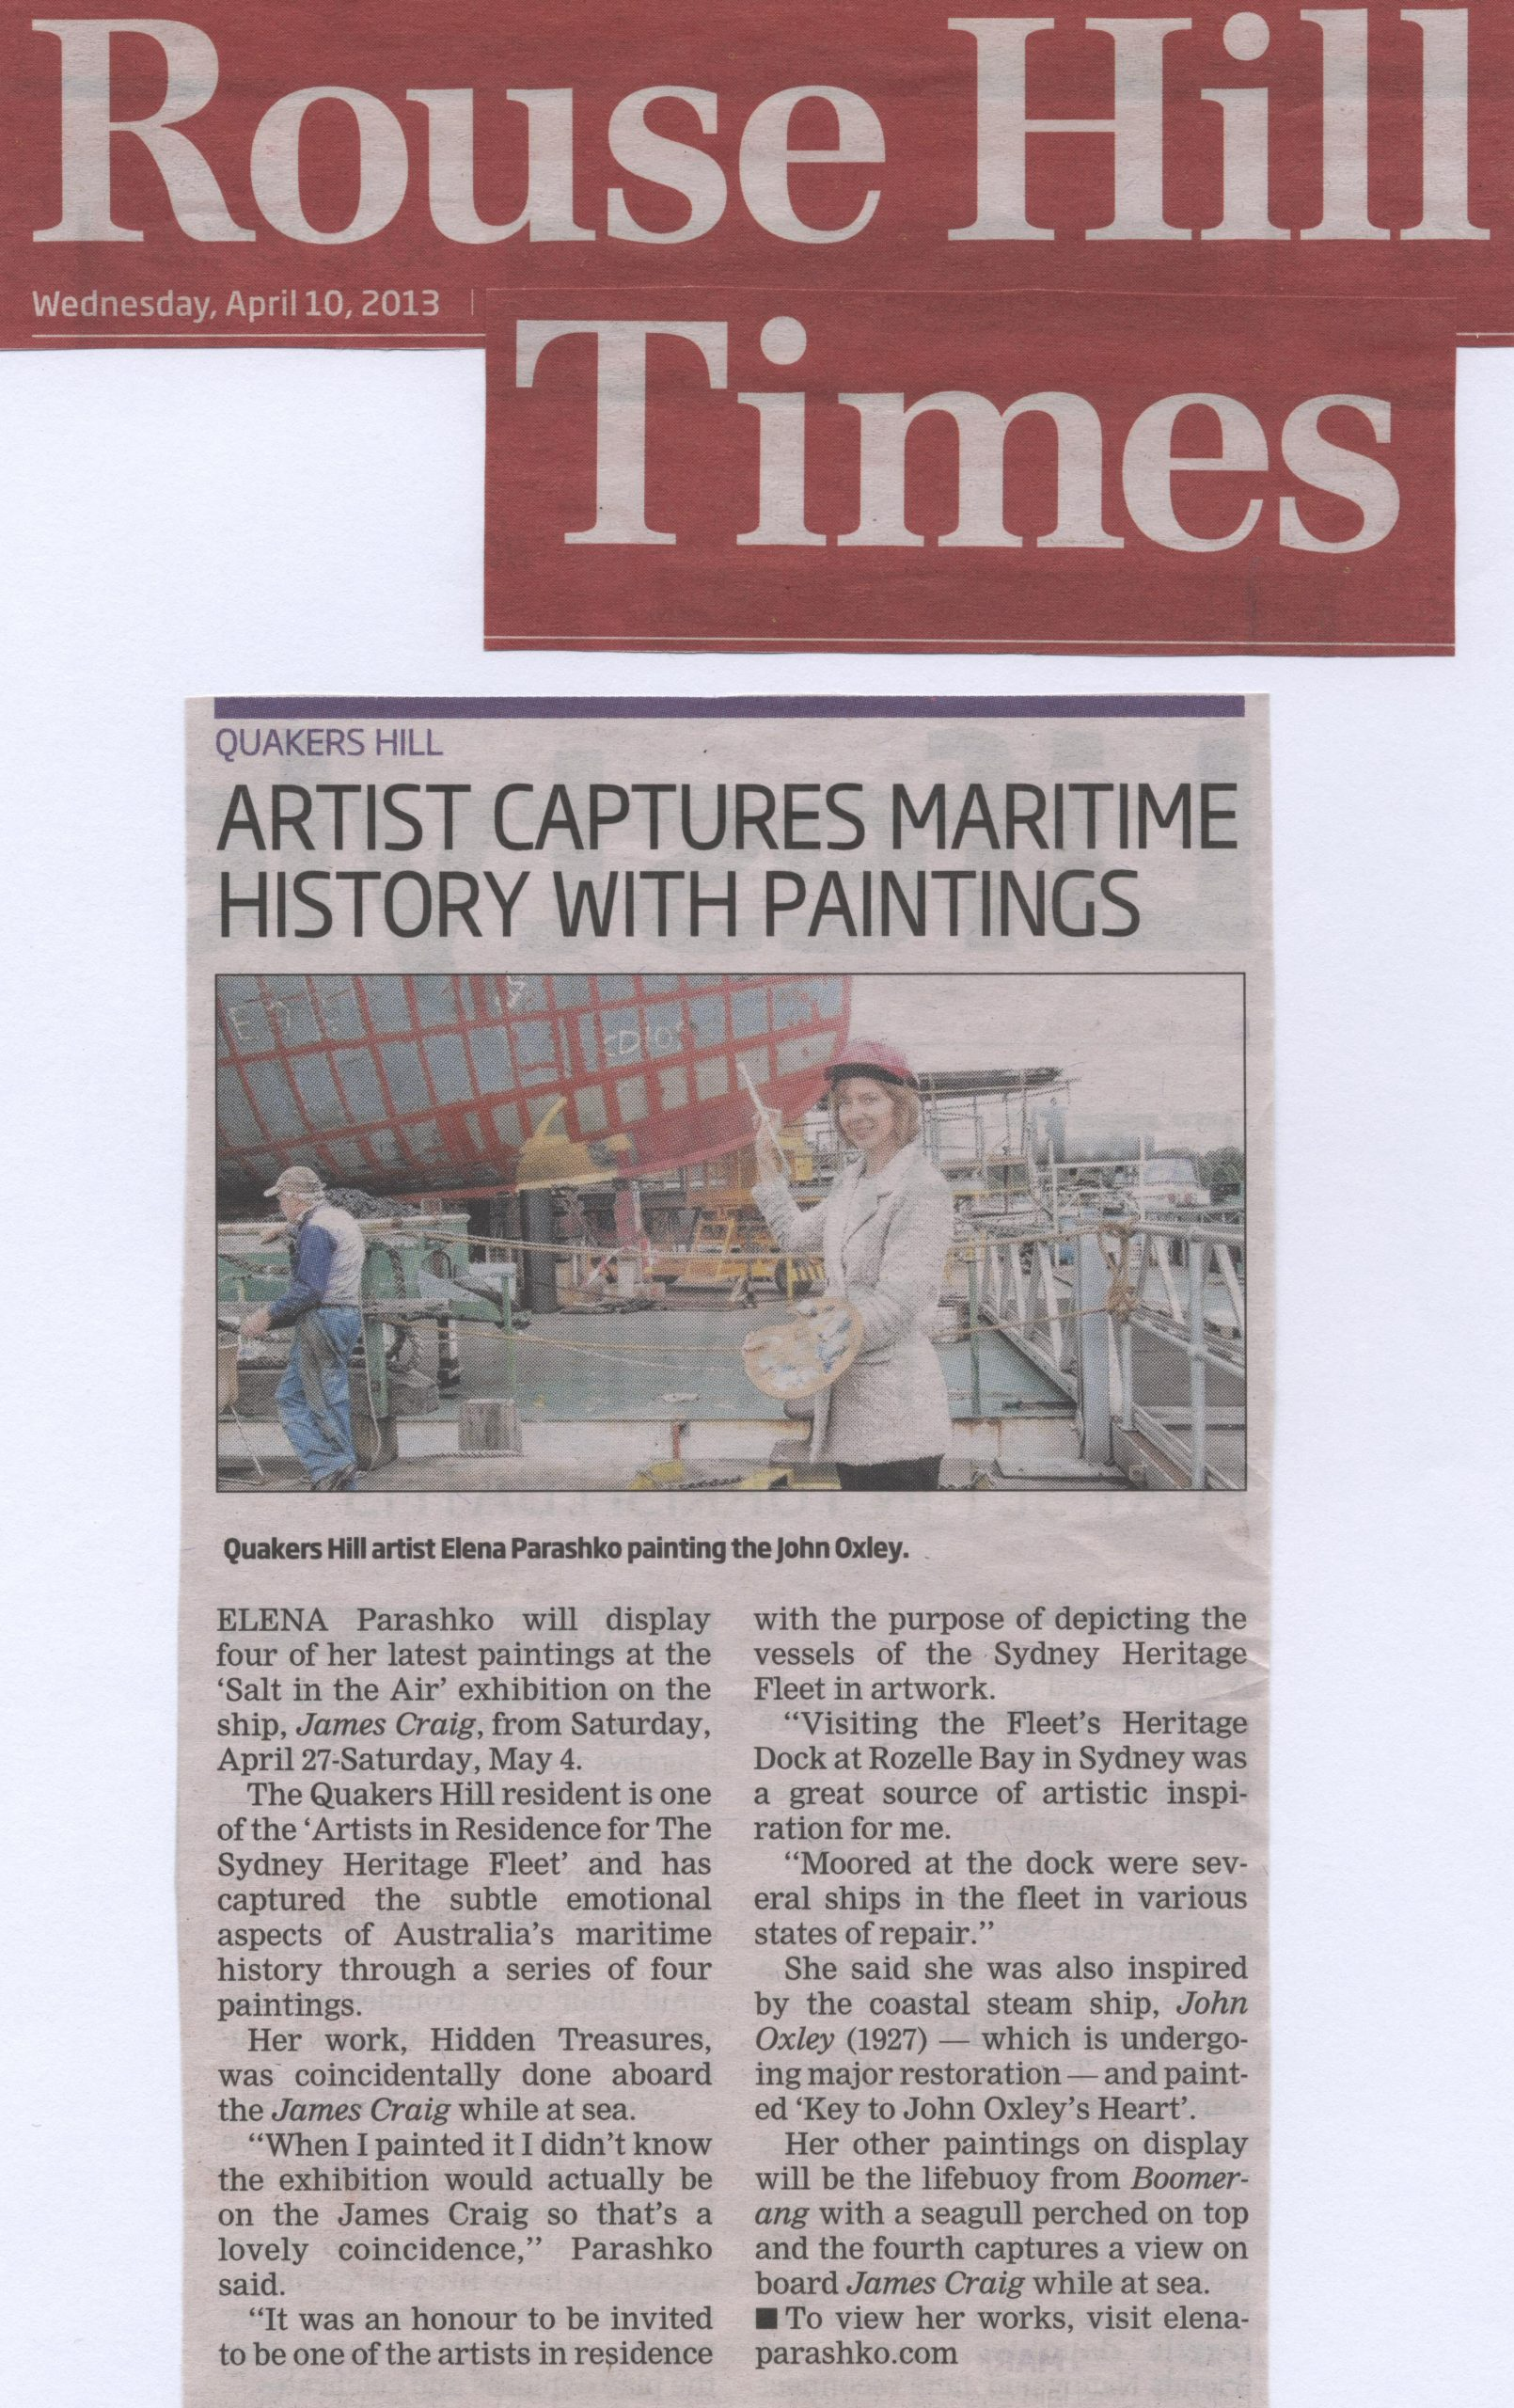 Artist Captures Maritime History